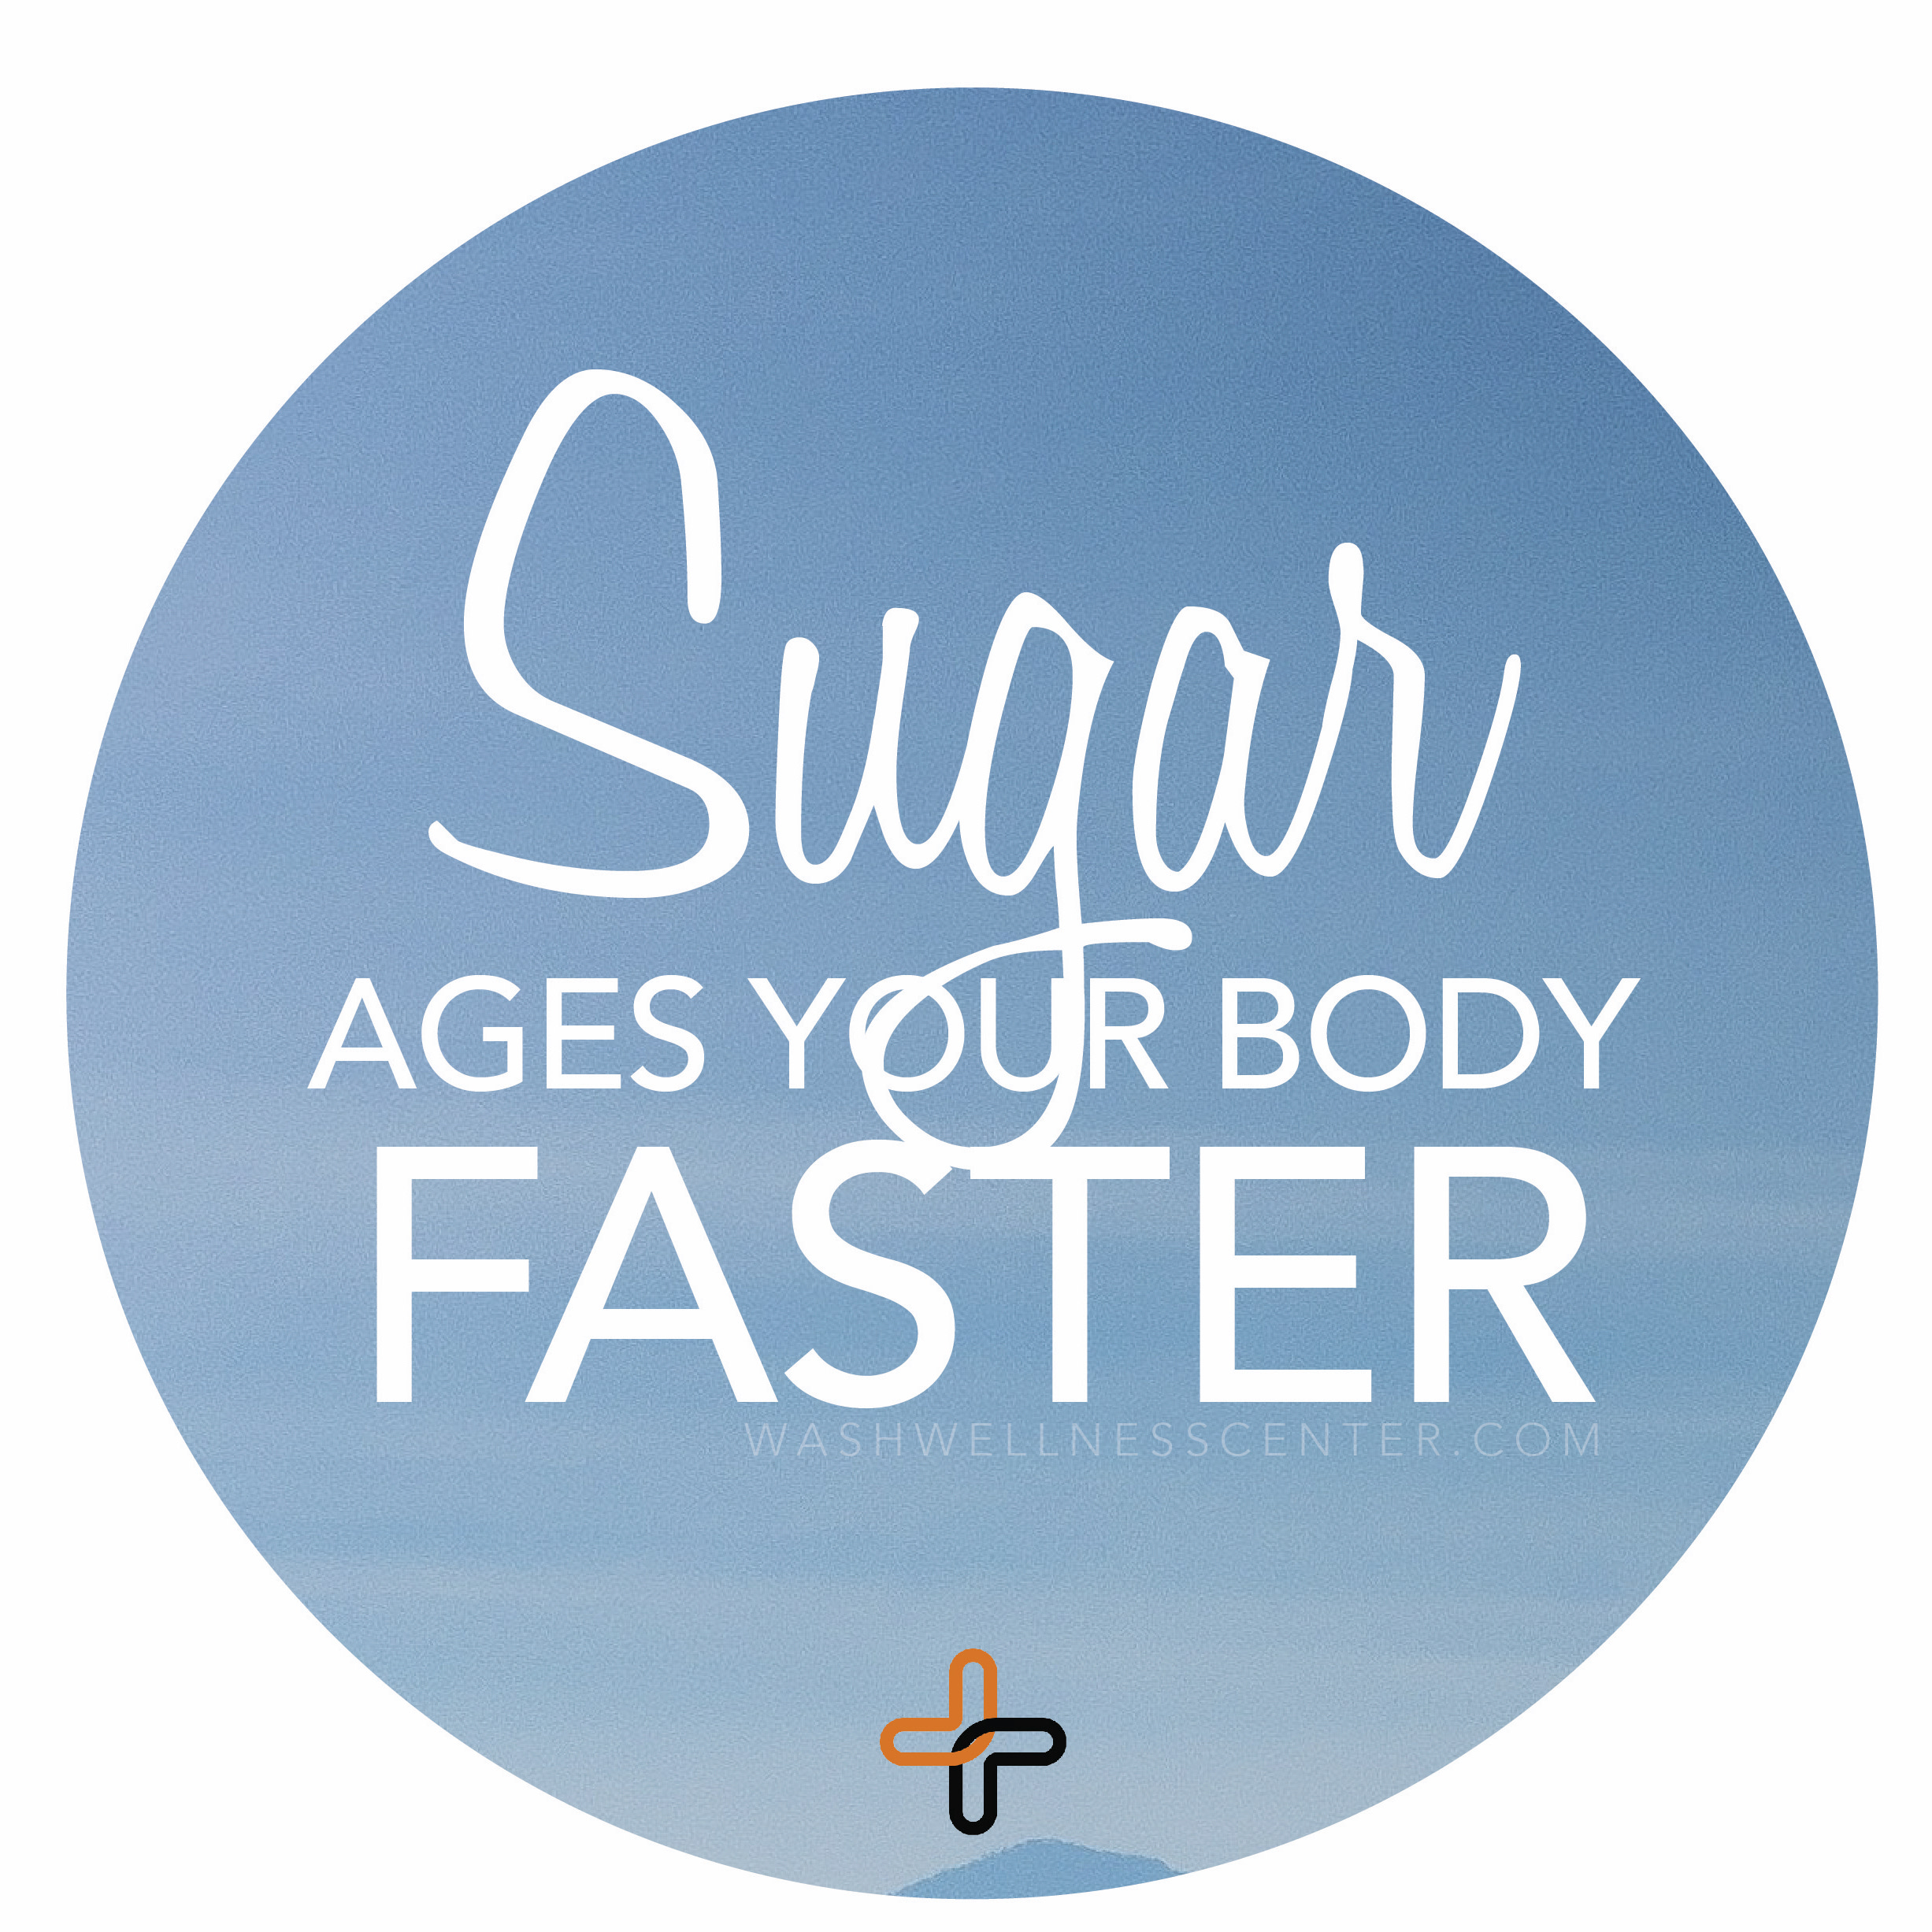 SUGAR+AGES+YOUR+BODY+FASTER.jpg